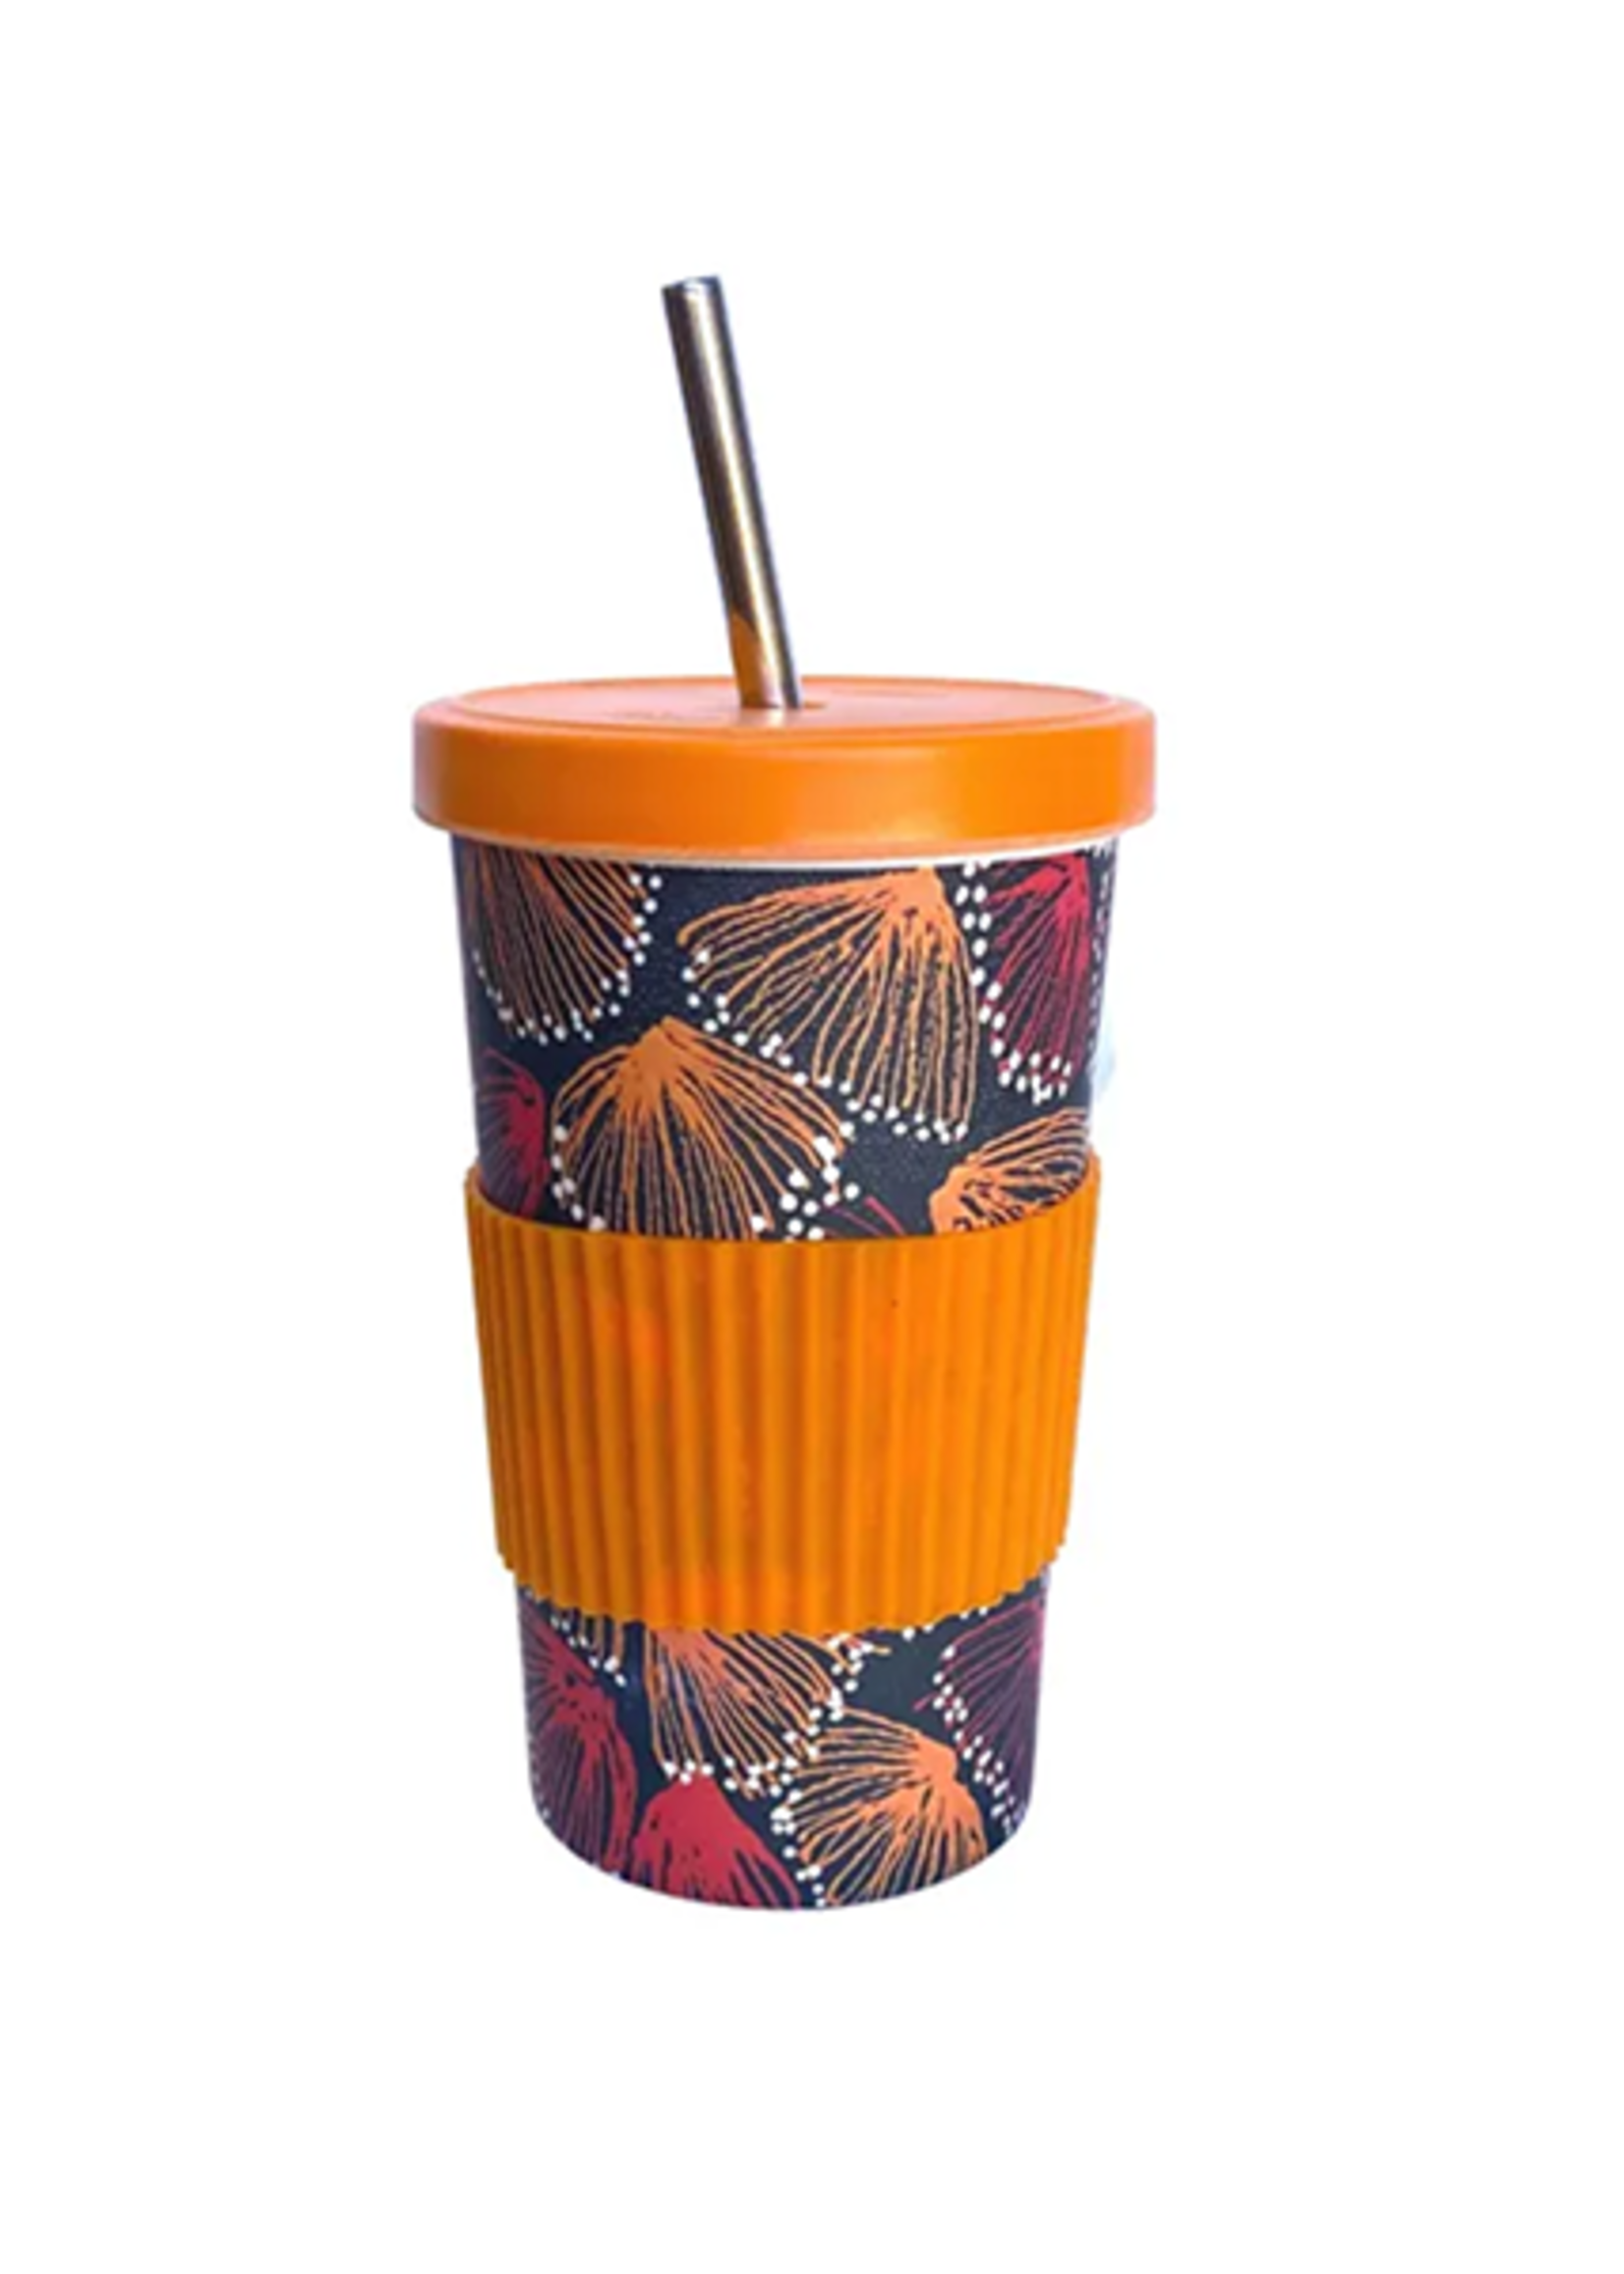 Utopia Large Tumbler Straw with Lid - Selina Teece